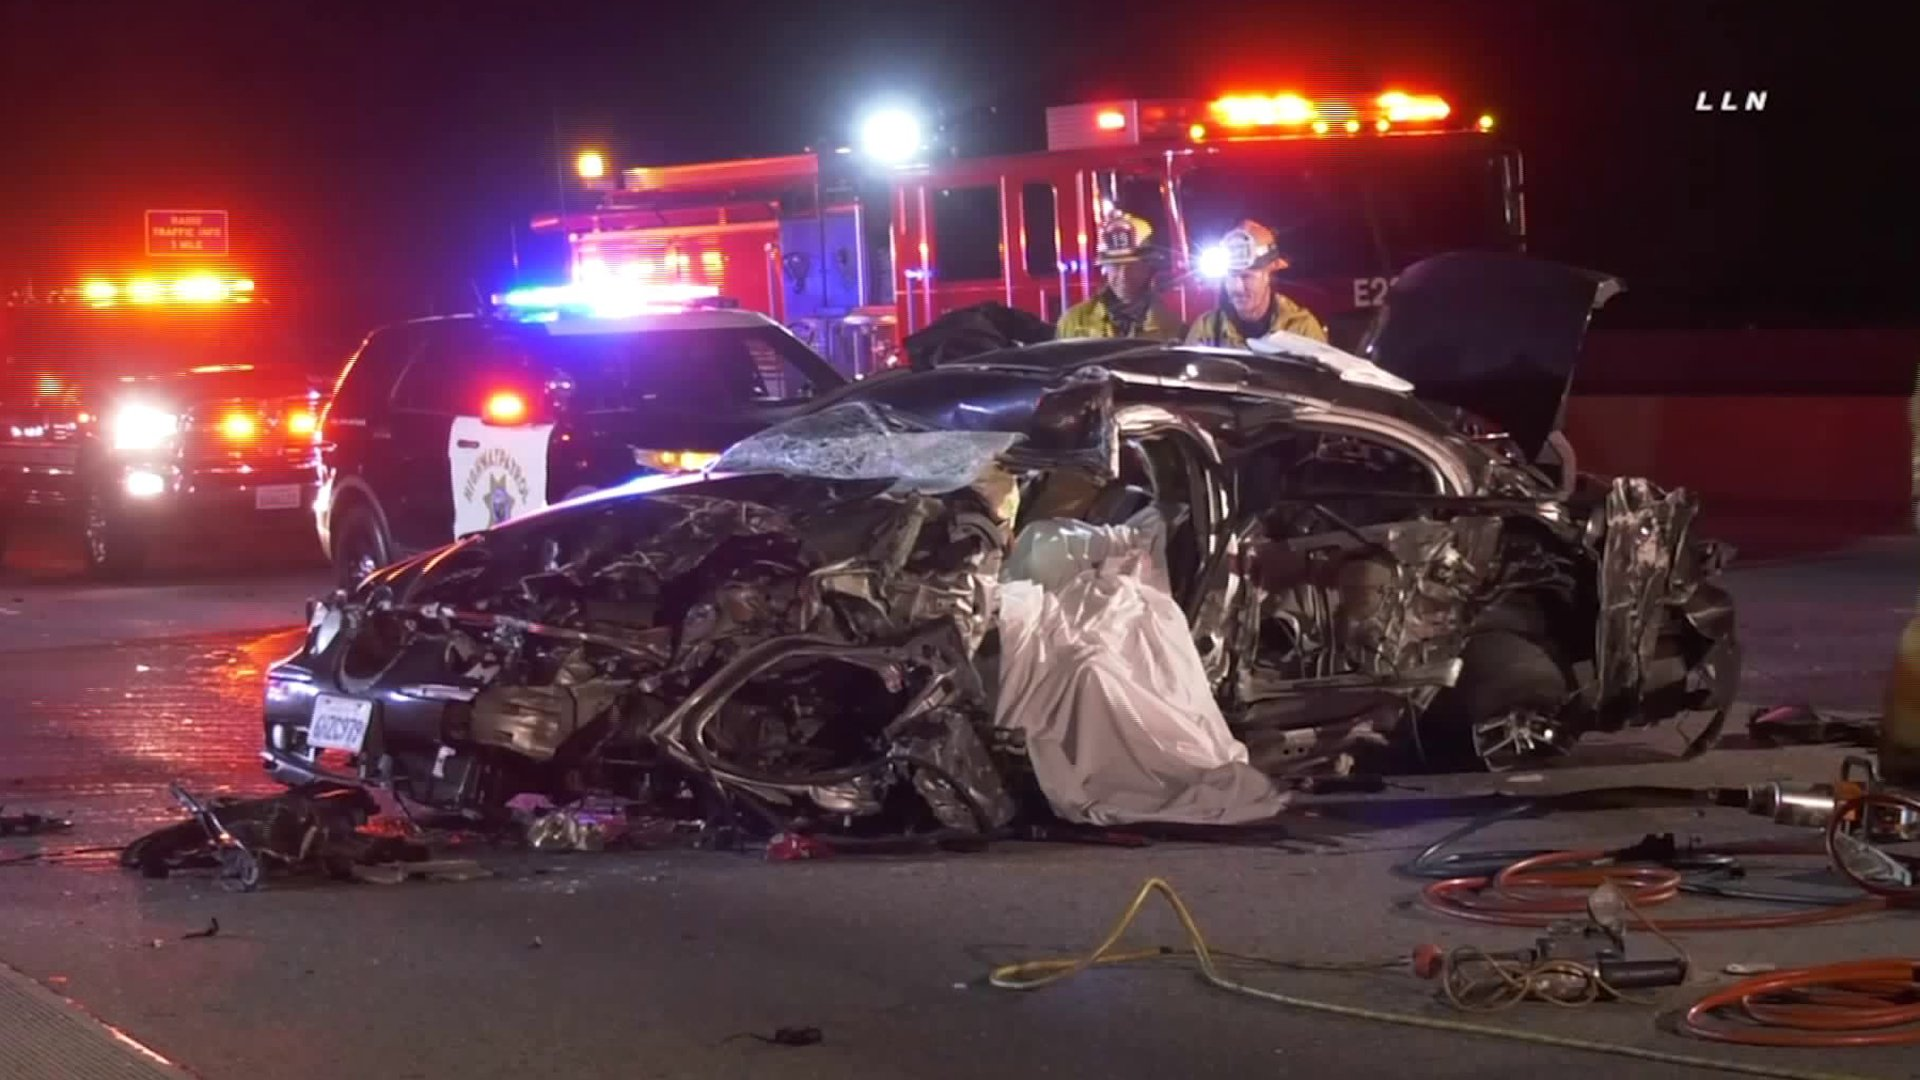 Authorities assess the scene of a deadly wrong-way crash on the 405 Freeway near Getty Center Drive on Feb. 16, 2020. (Credit: KTLA)